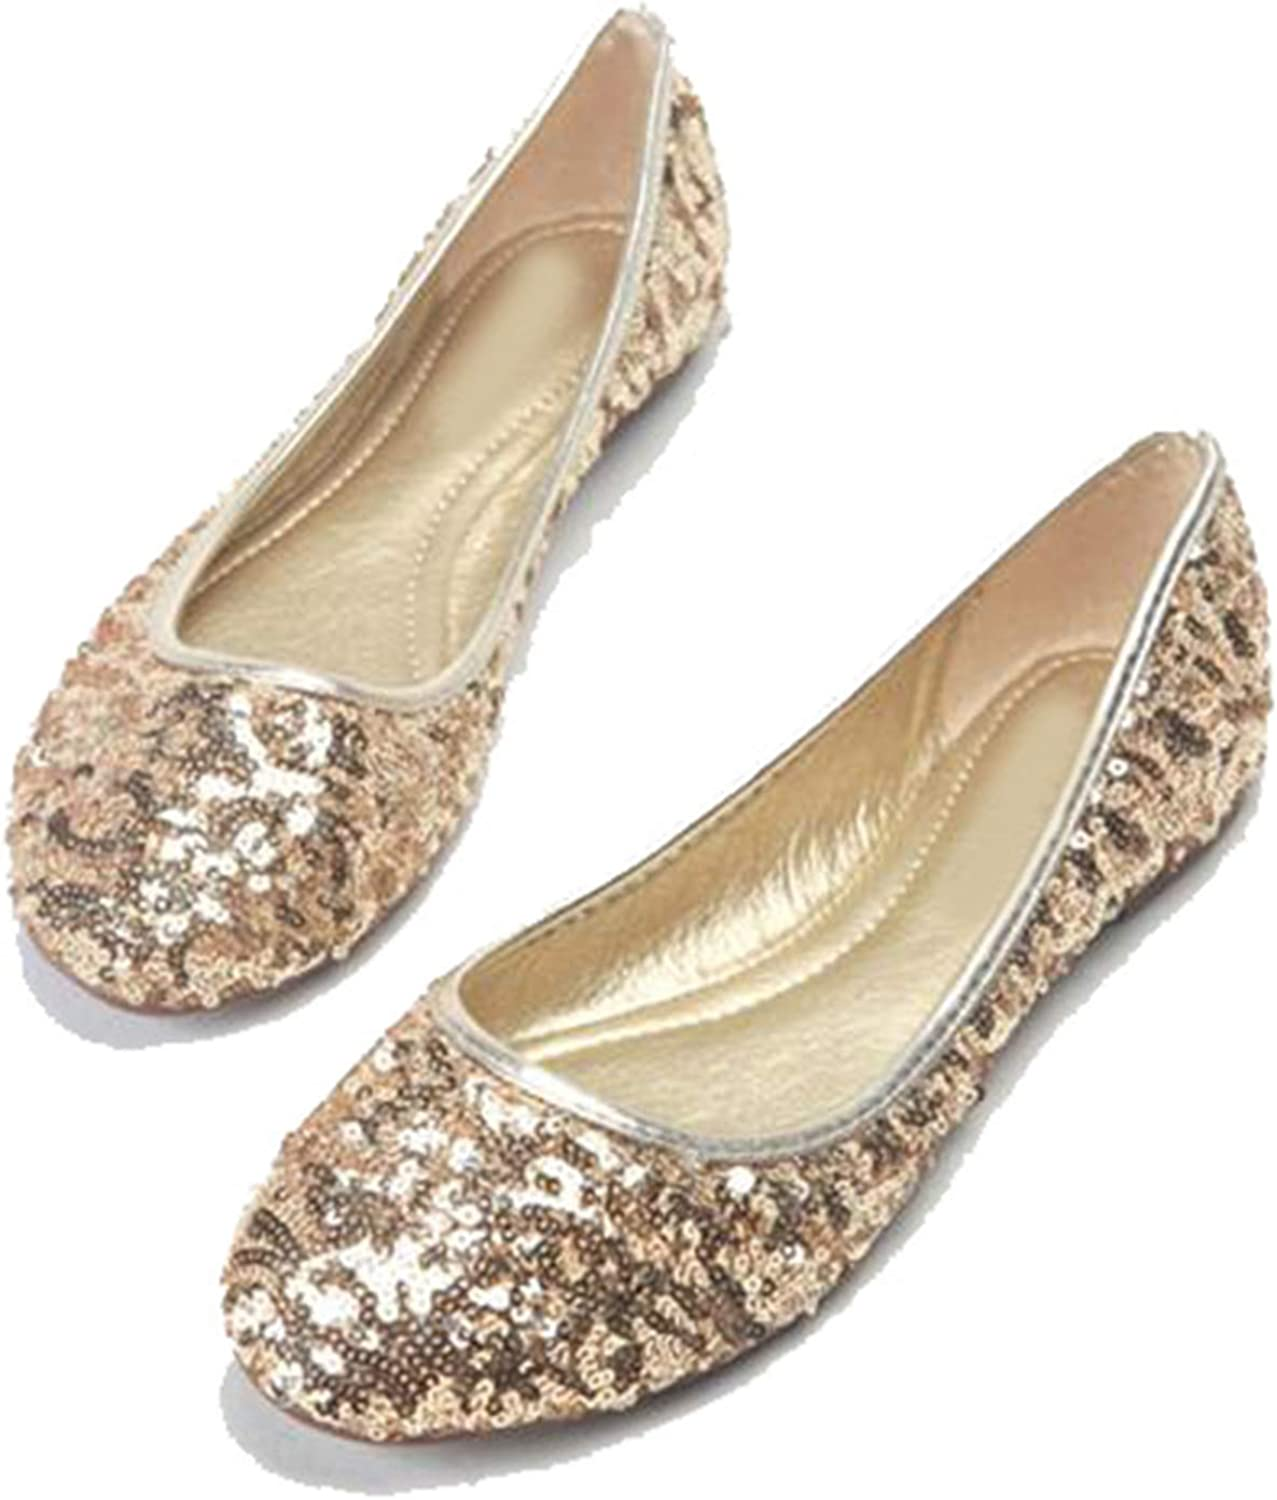 Awmerny Boots Womens Gliiter Sequined Flats Ladies Ballerina Flat shoes New